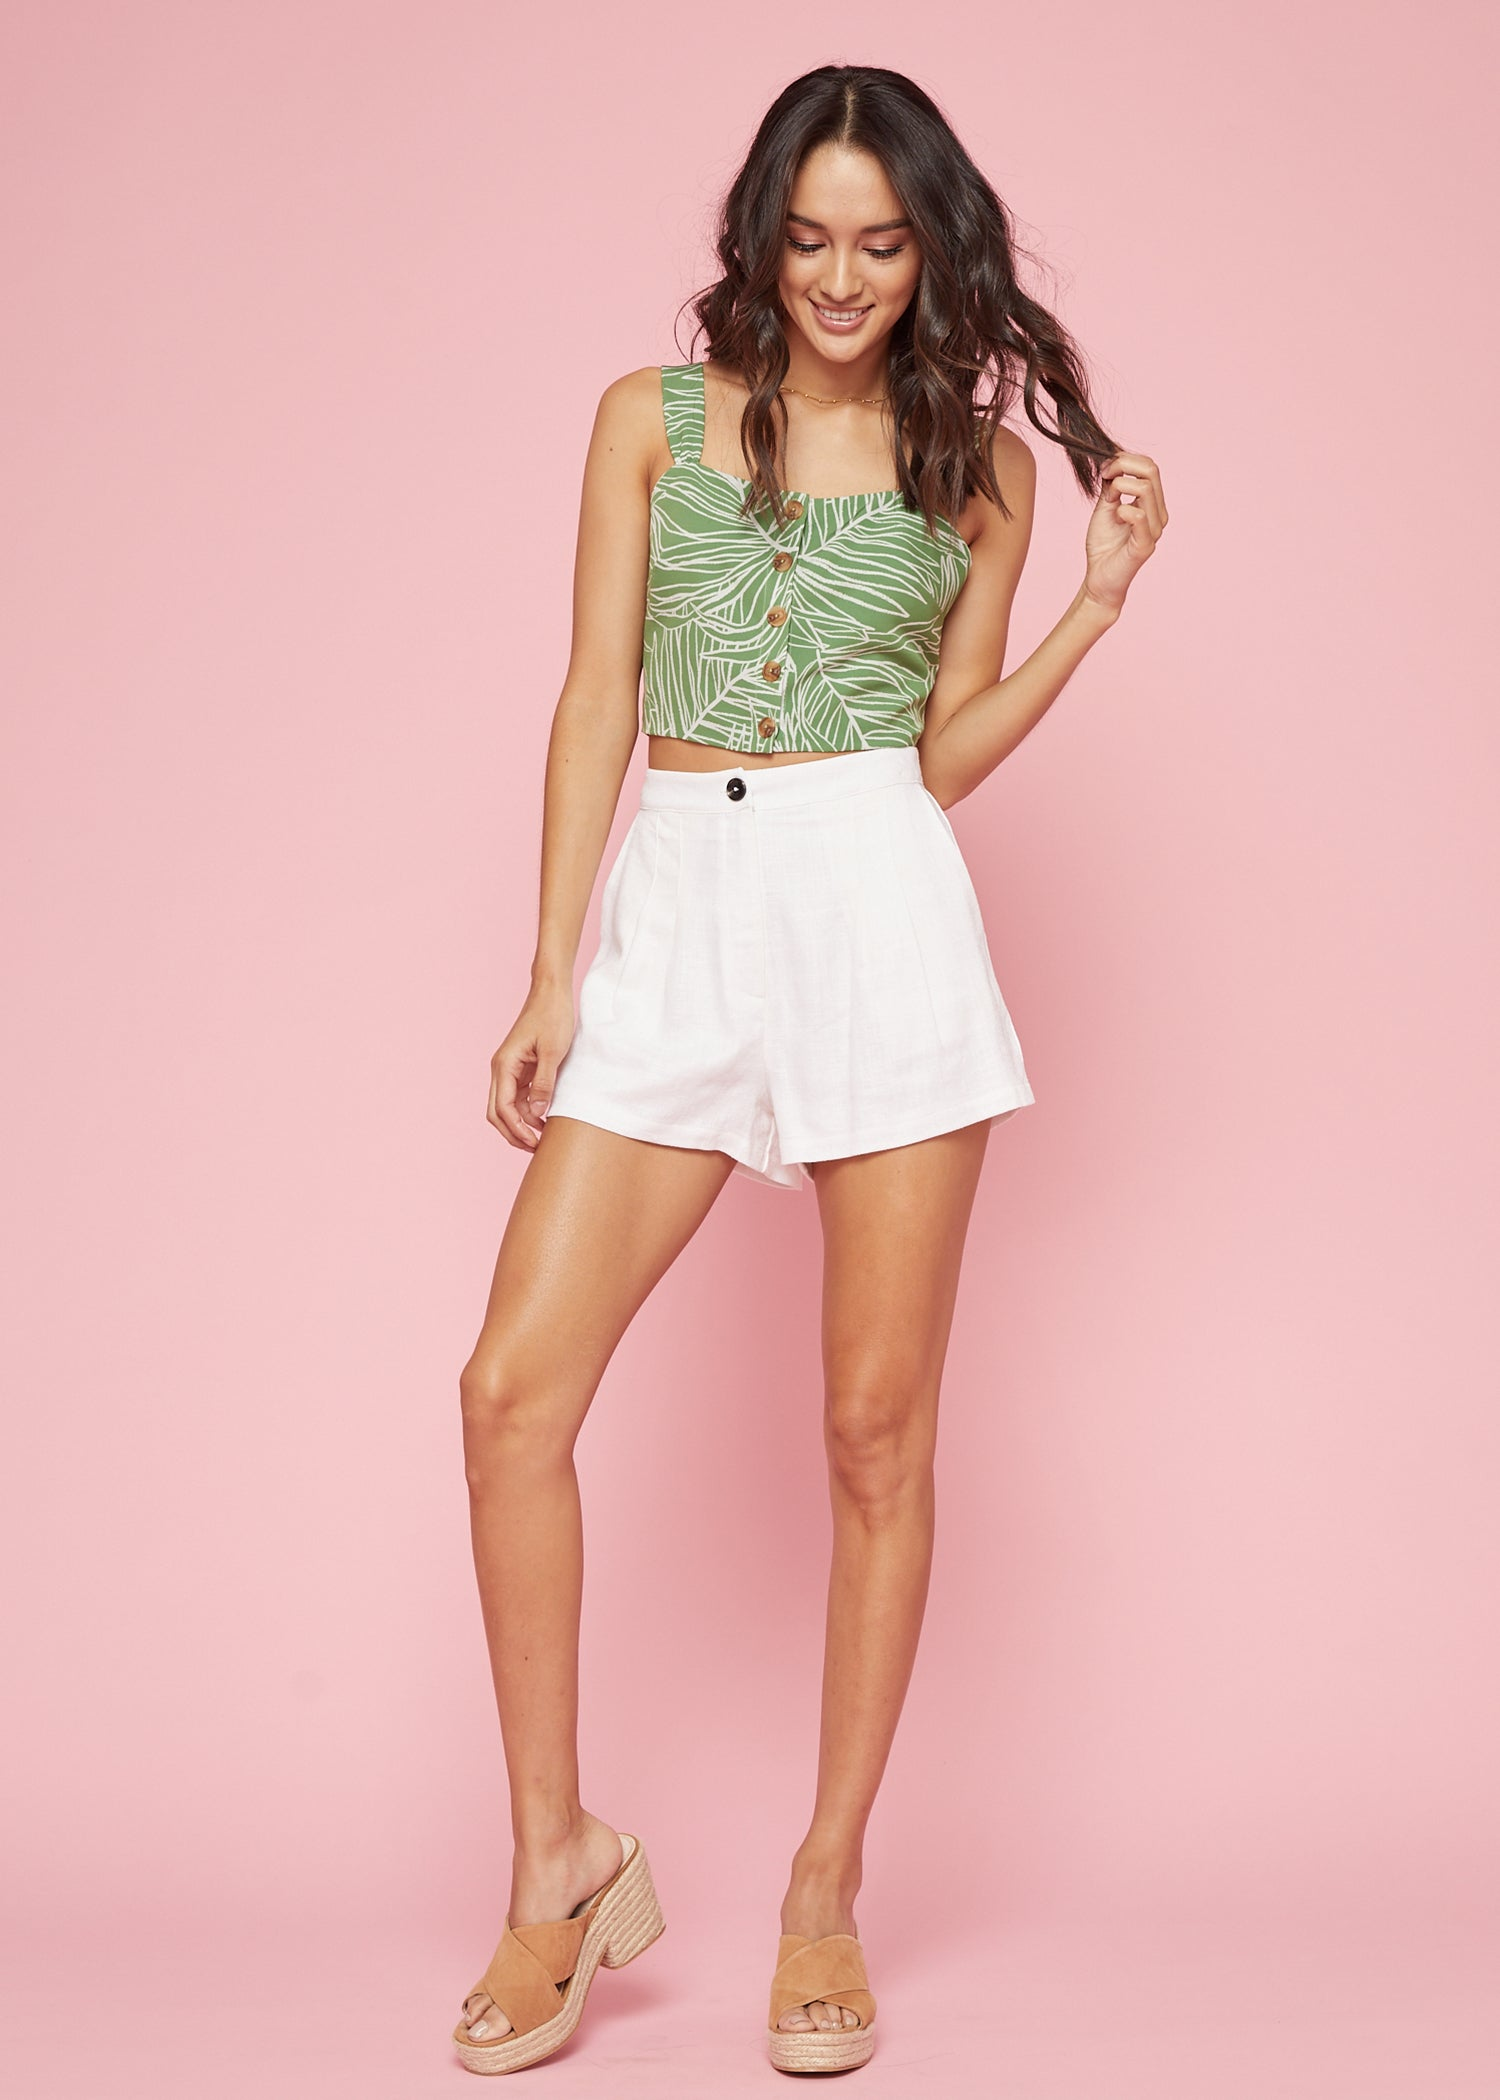 Vines Crop Top